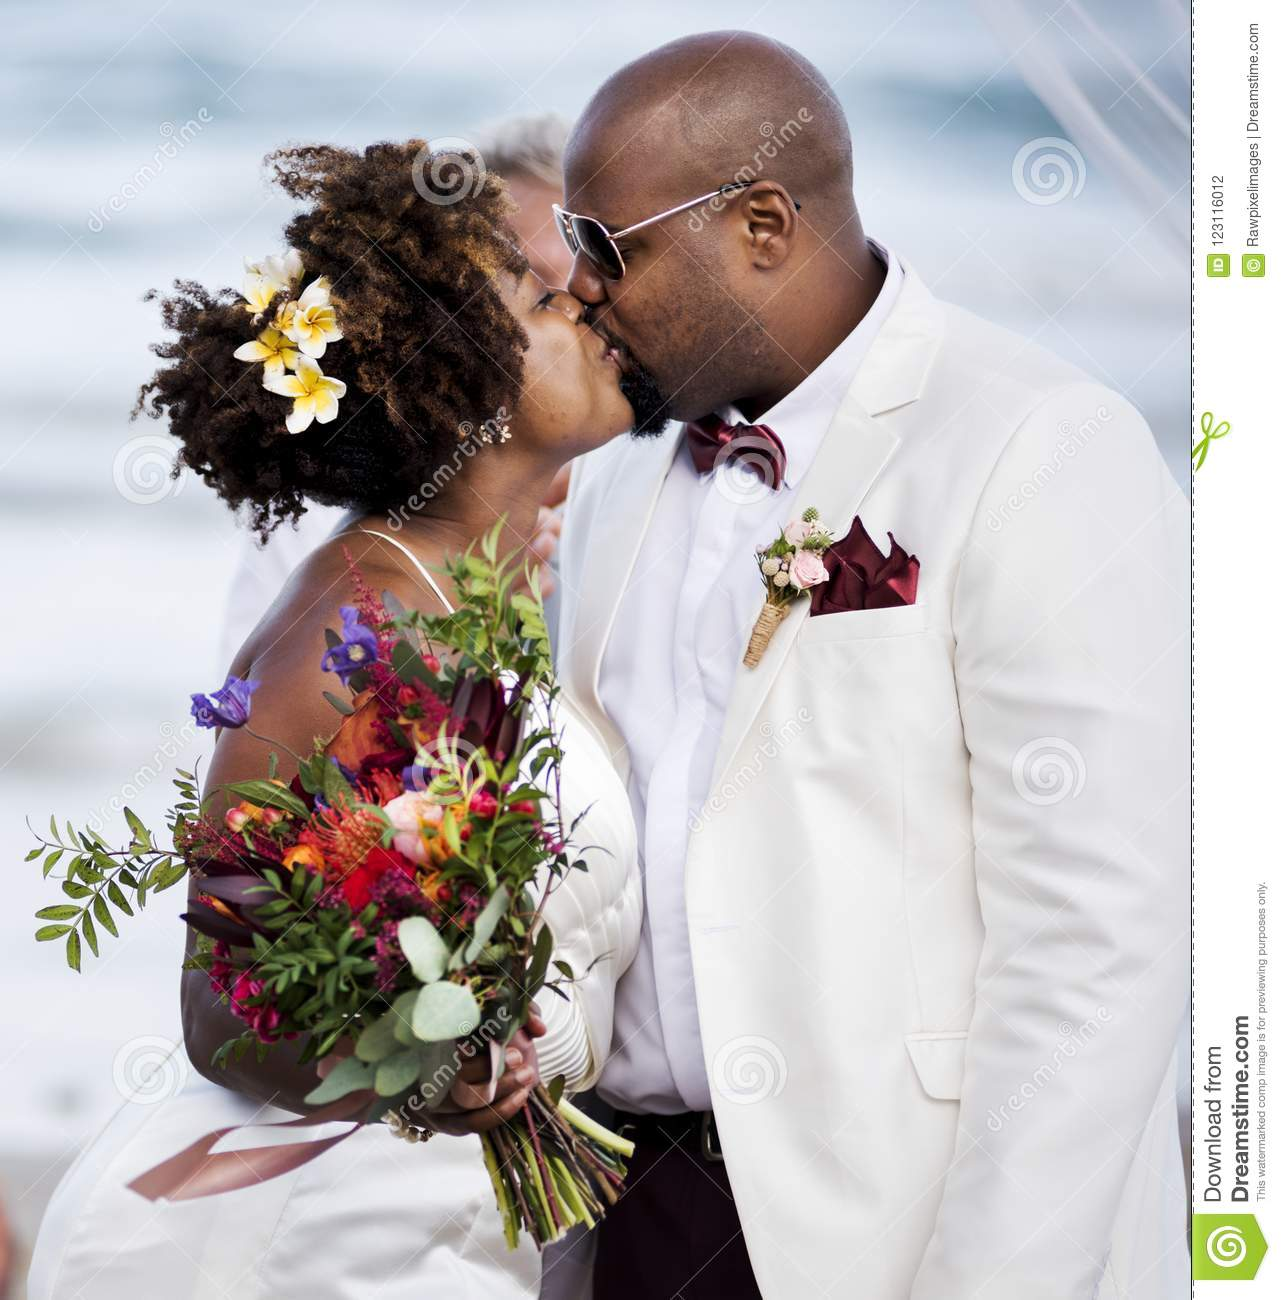 Couple At The Beach Stock Image Image Of Caucasian: African American Couple Getting Married At The Beach Stock